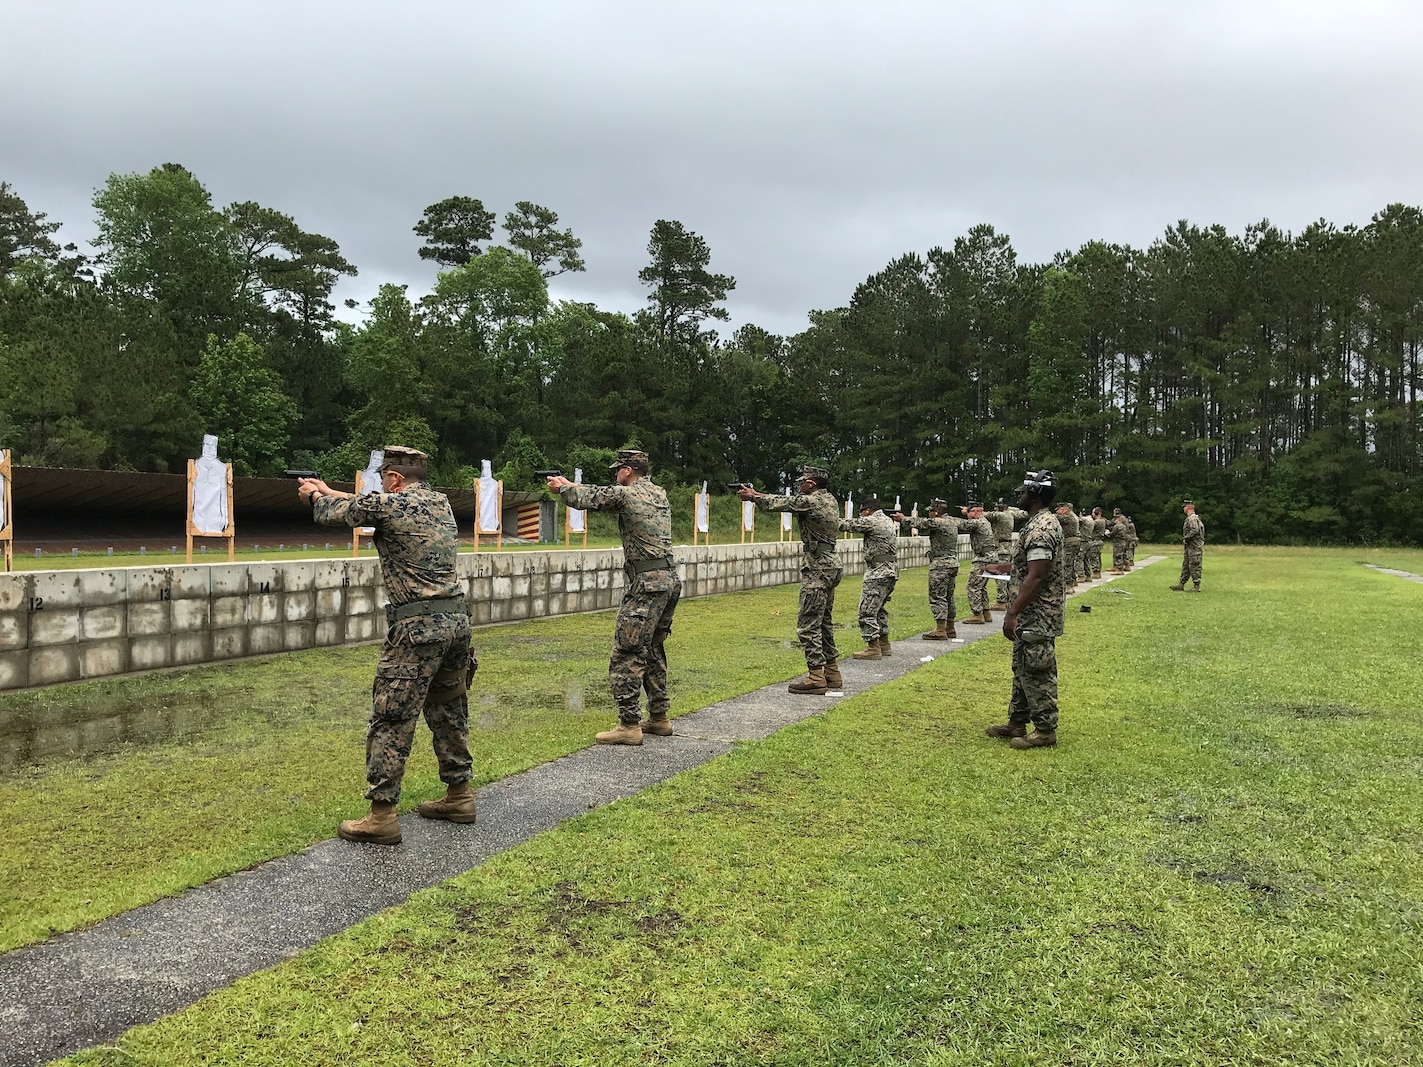 On May 21, 2020 Marines and Sailors assigned to Marine Corps Engineer School used an annual training day to conduct a pistol range at Stone Bay. Qualifying with the 9 mm pistol is an annual requirement and proficiency is tested at 7, 15, and 25 yard lines.